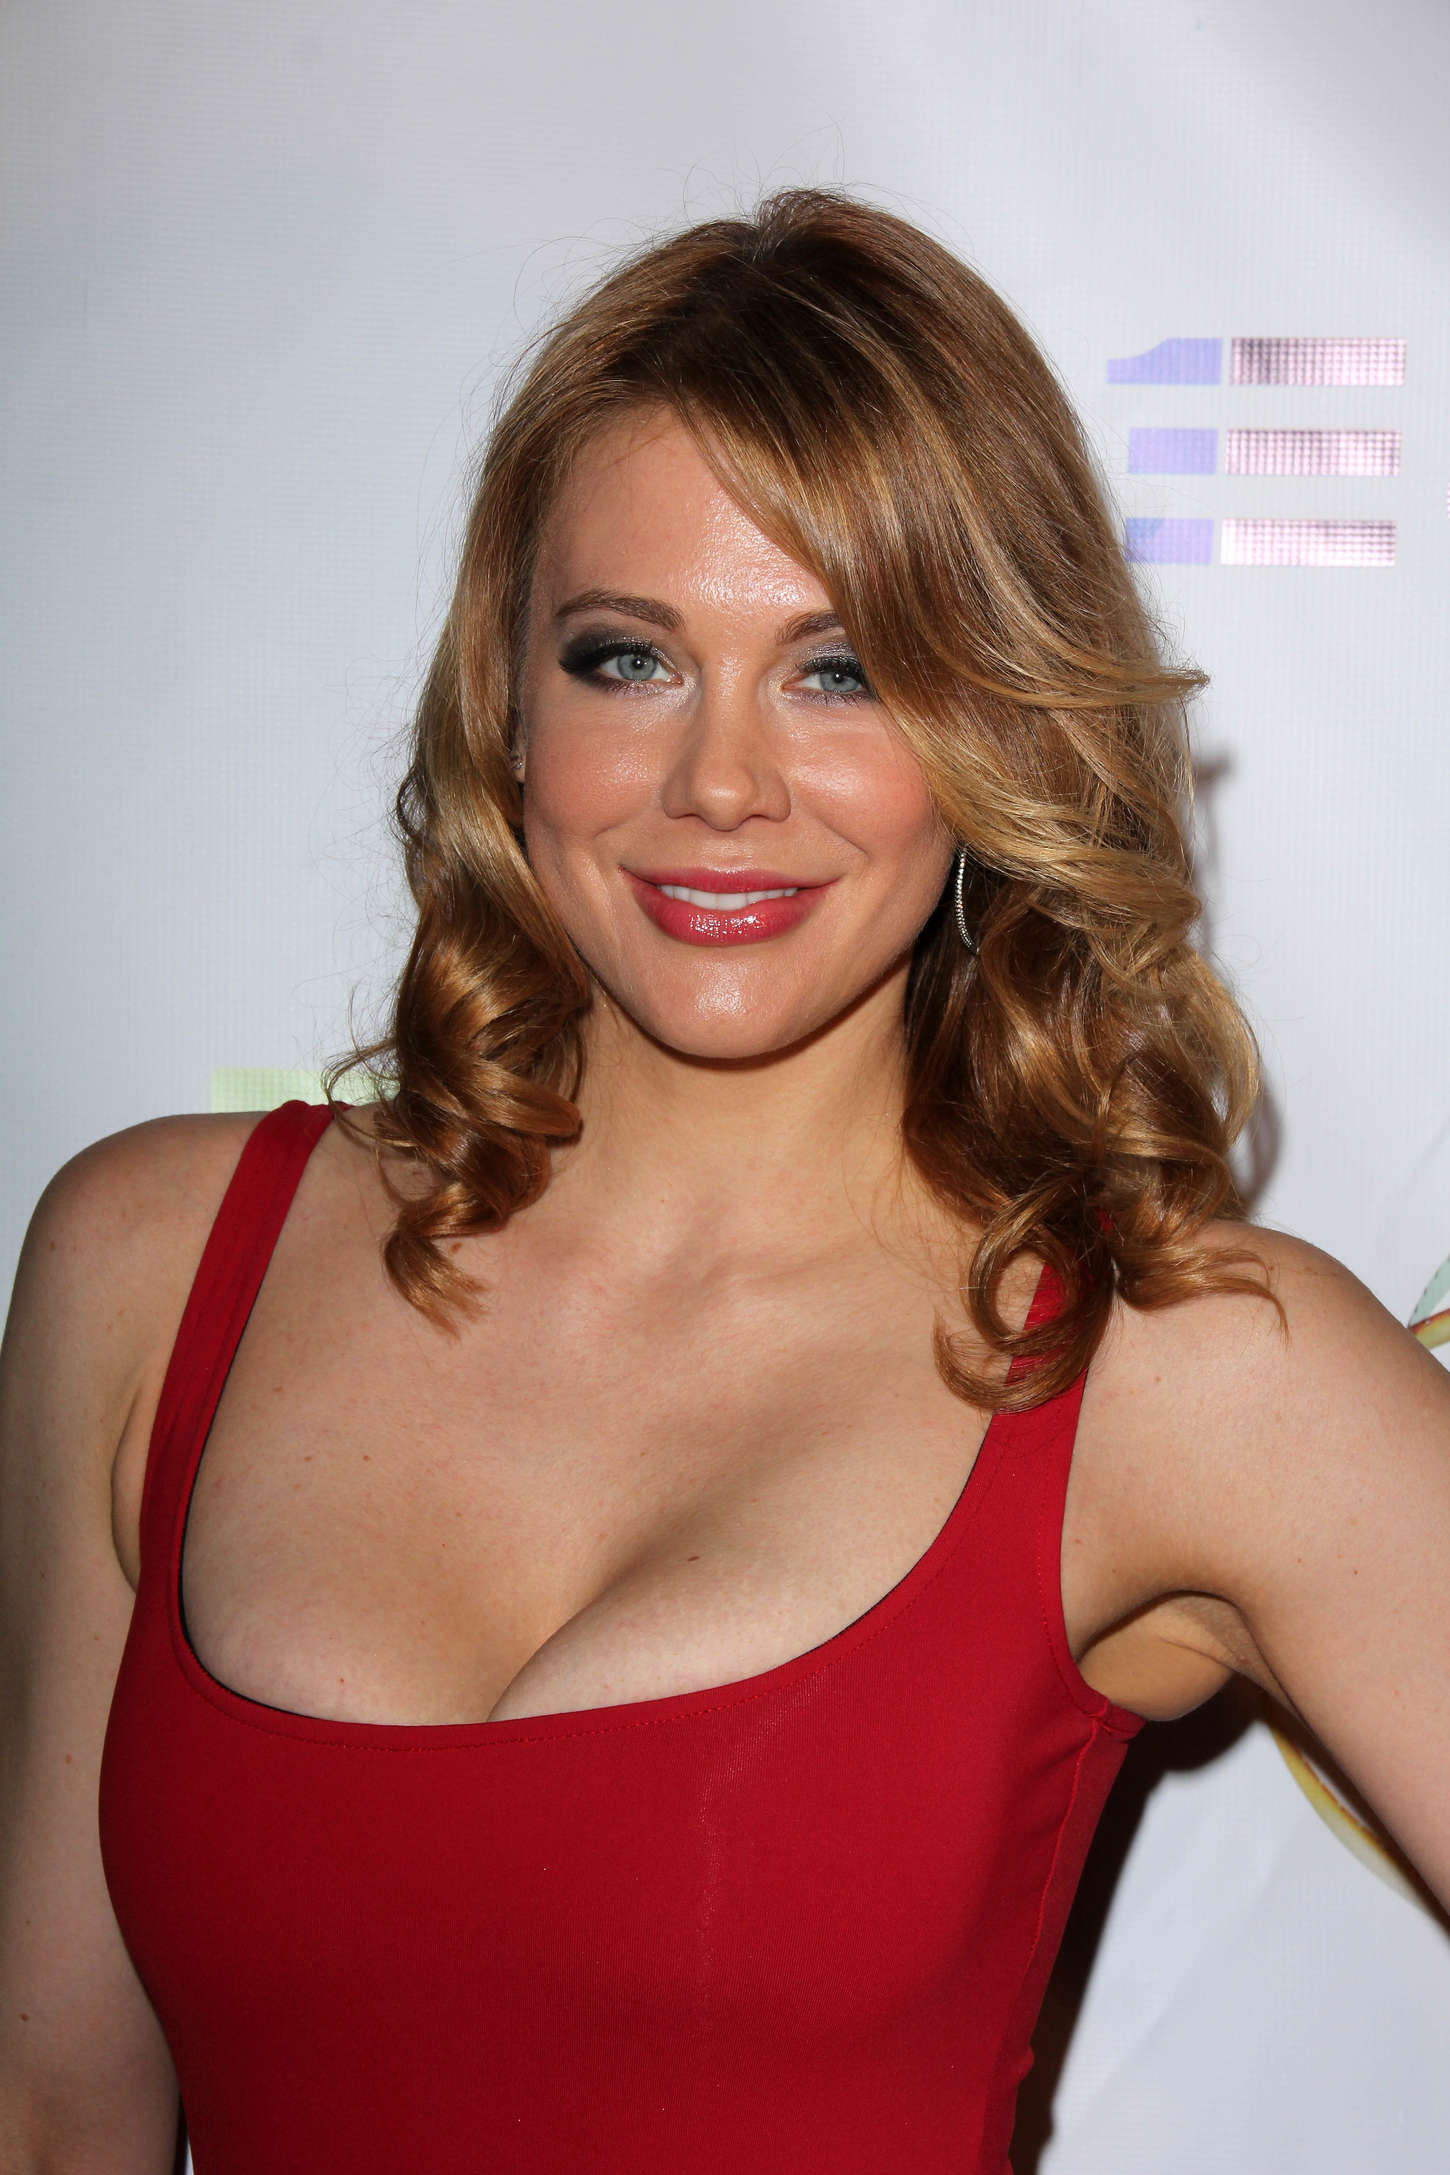 Hot Maitland Ward naked (98 photo), Tits, Cleavage, Boobs, legs 2020